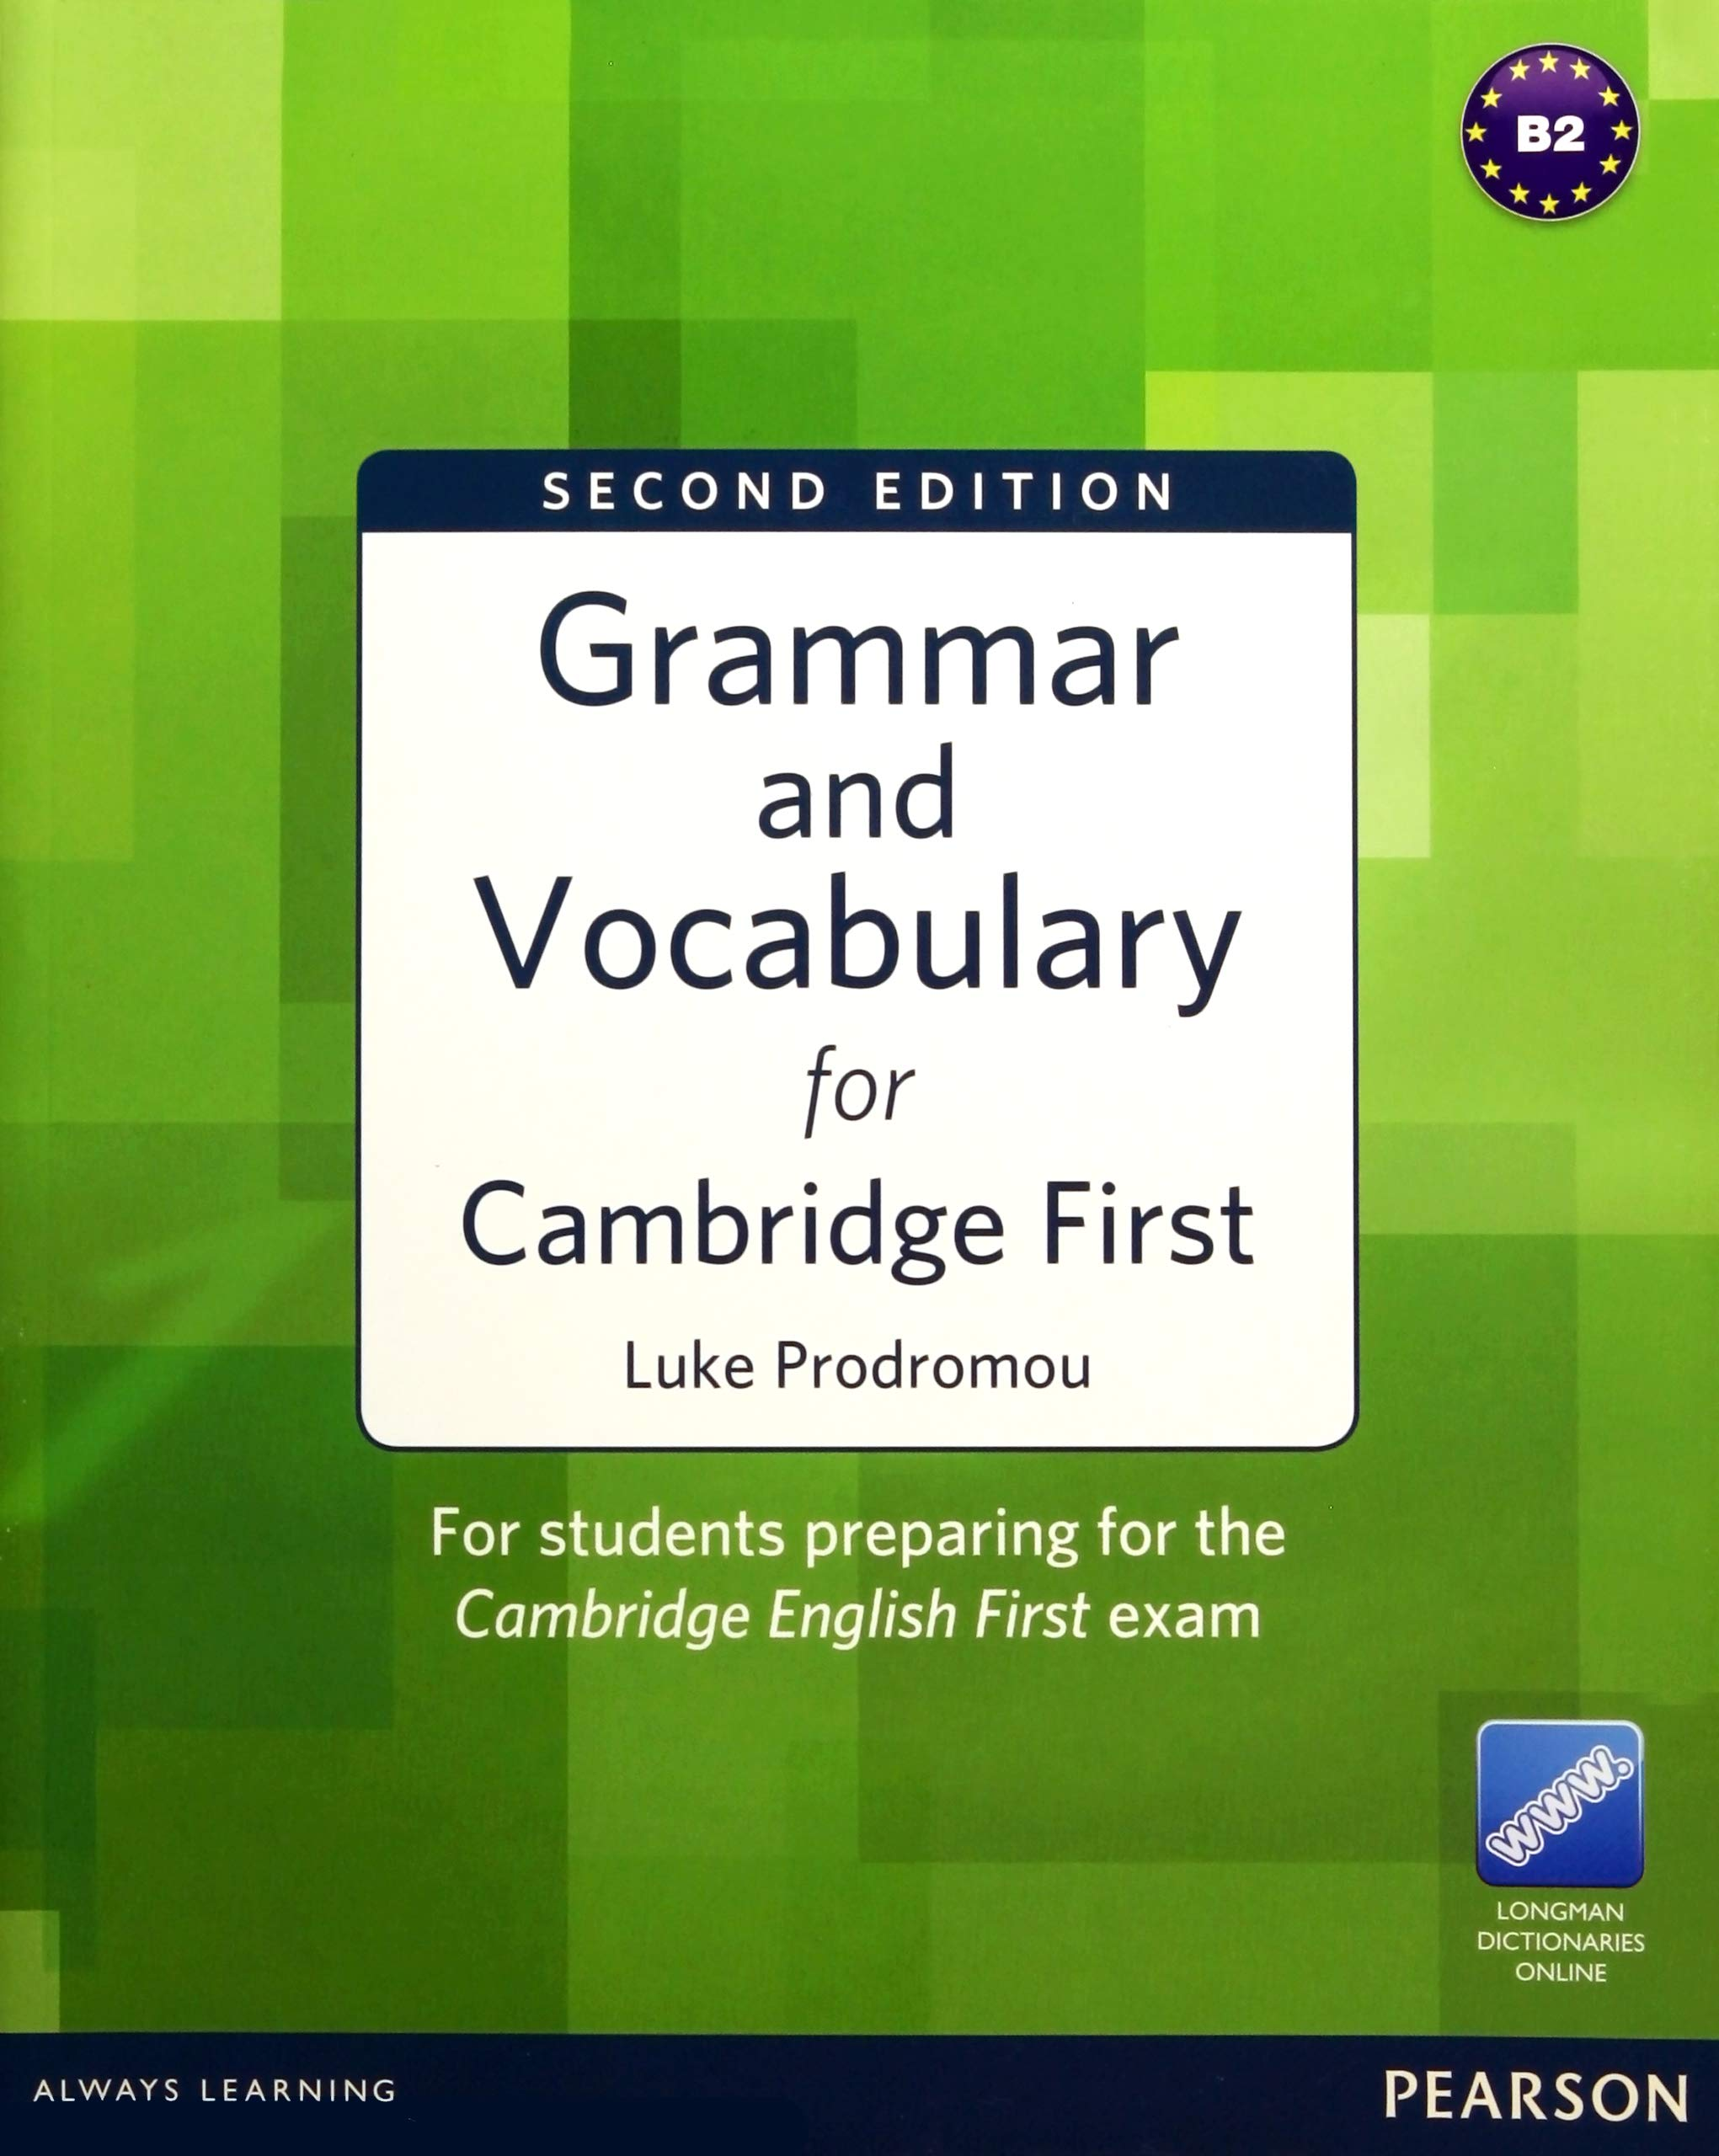 Grammar And Vocabulary For FCE 2nd Edition Without Key Plus Access To Longman Dictionaries Online Lingua Inglese